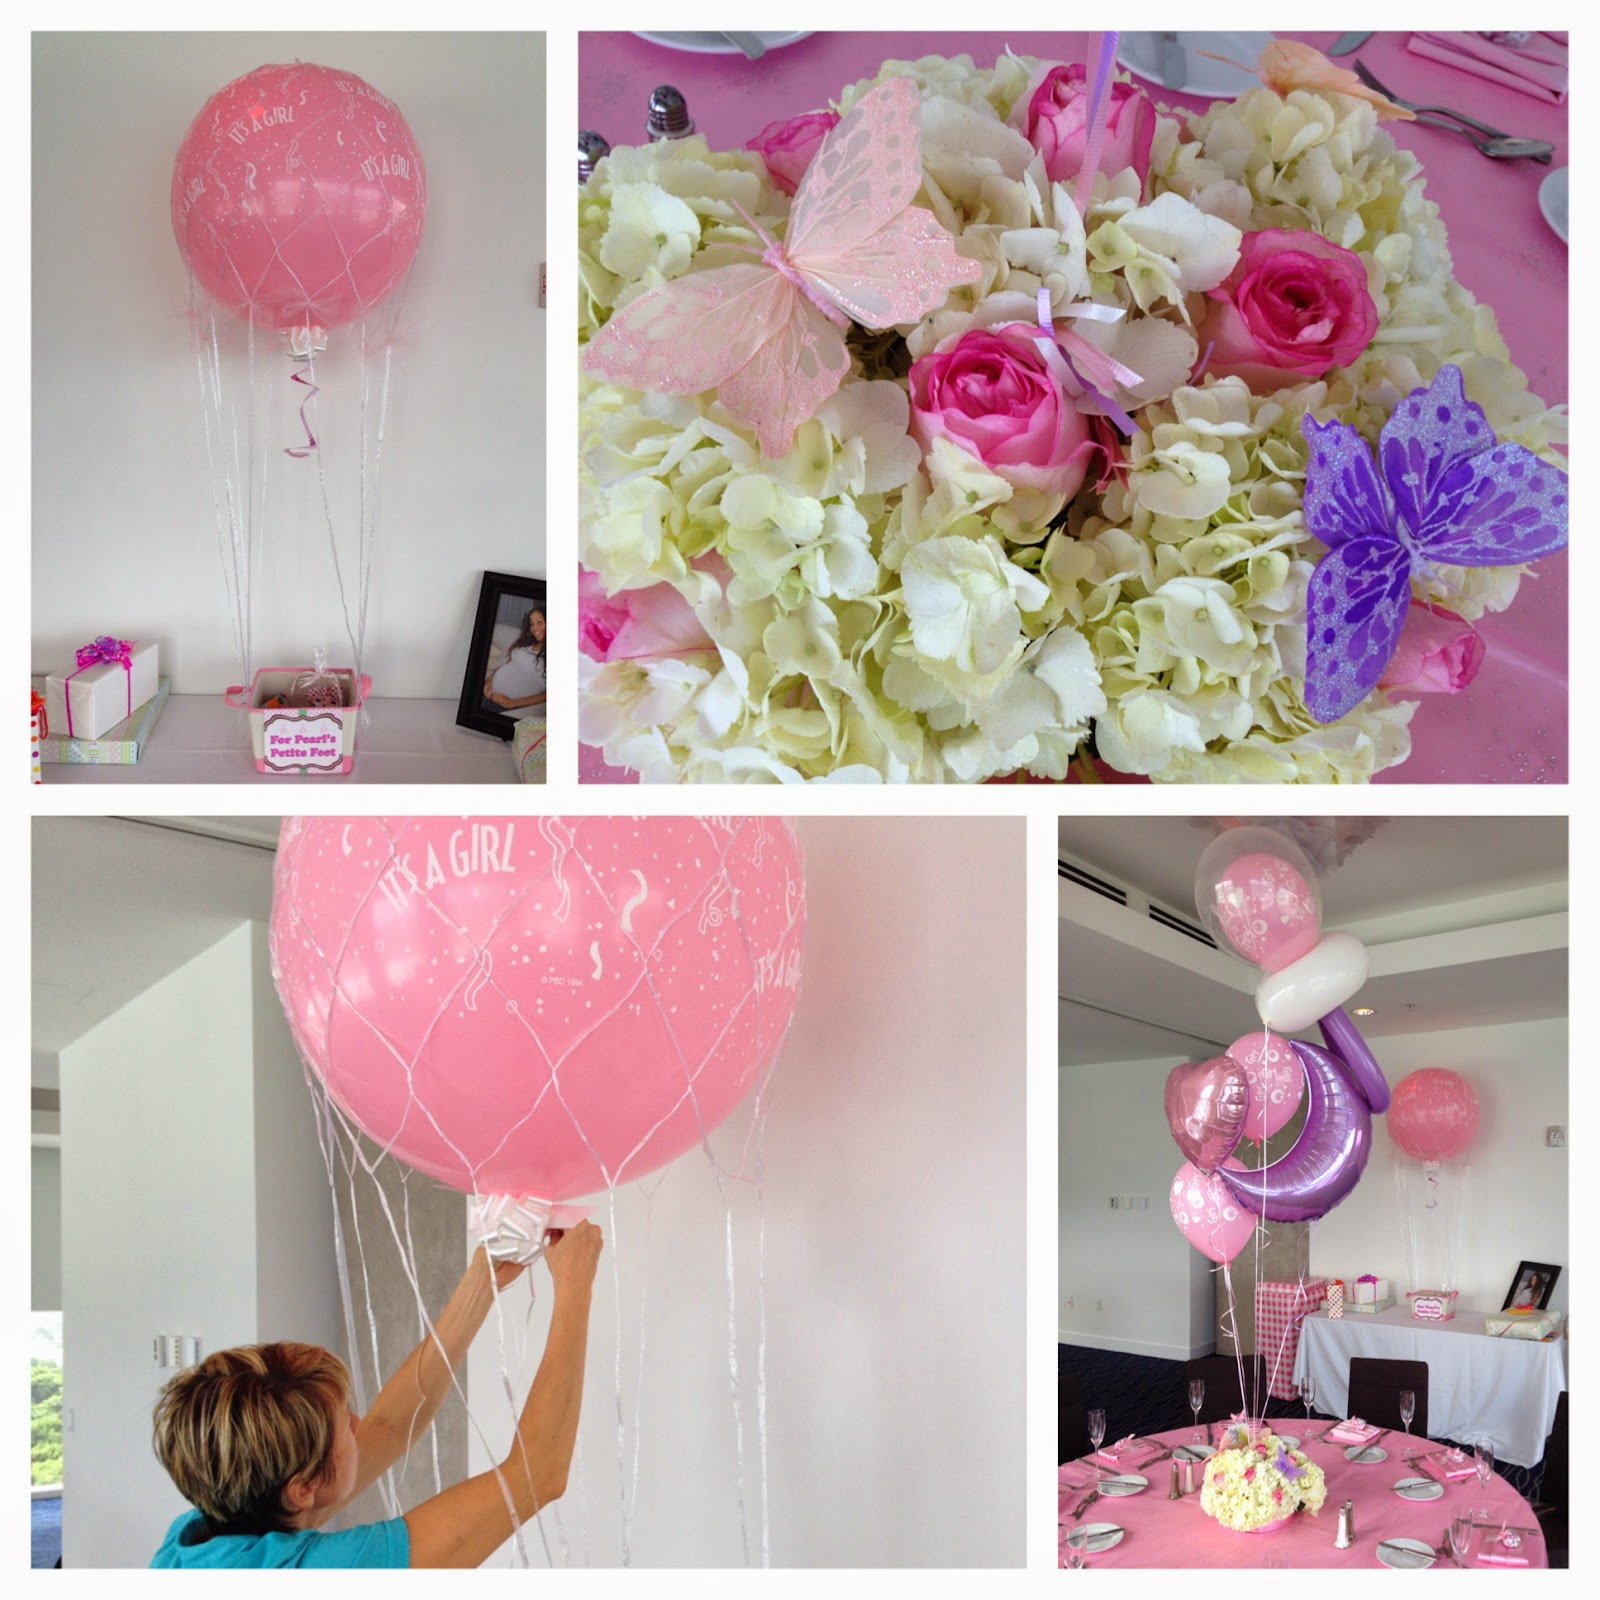 Baby shower decoration with pacifier balloon and flowers